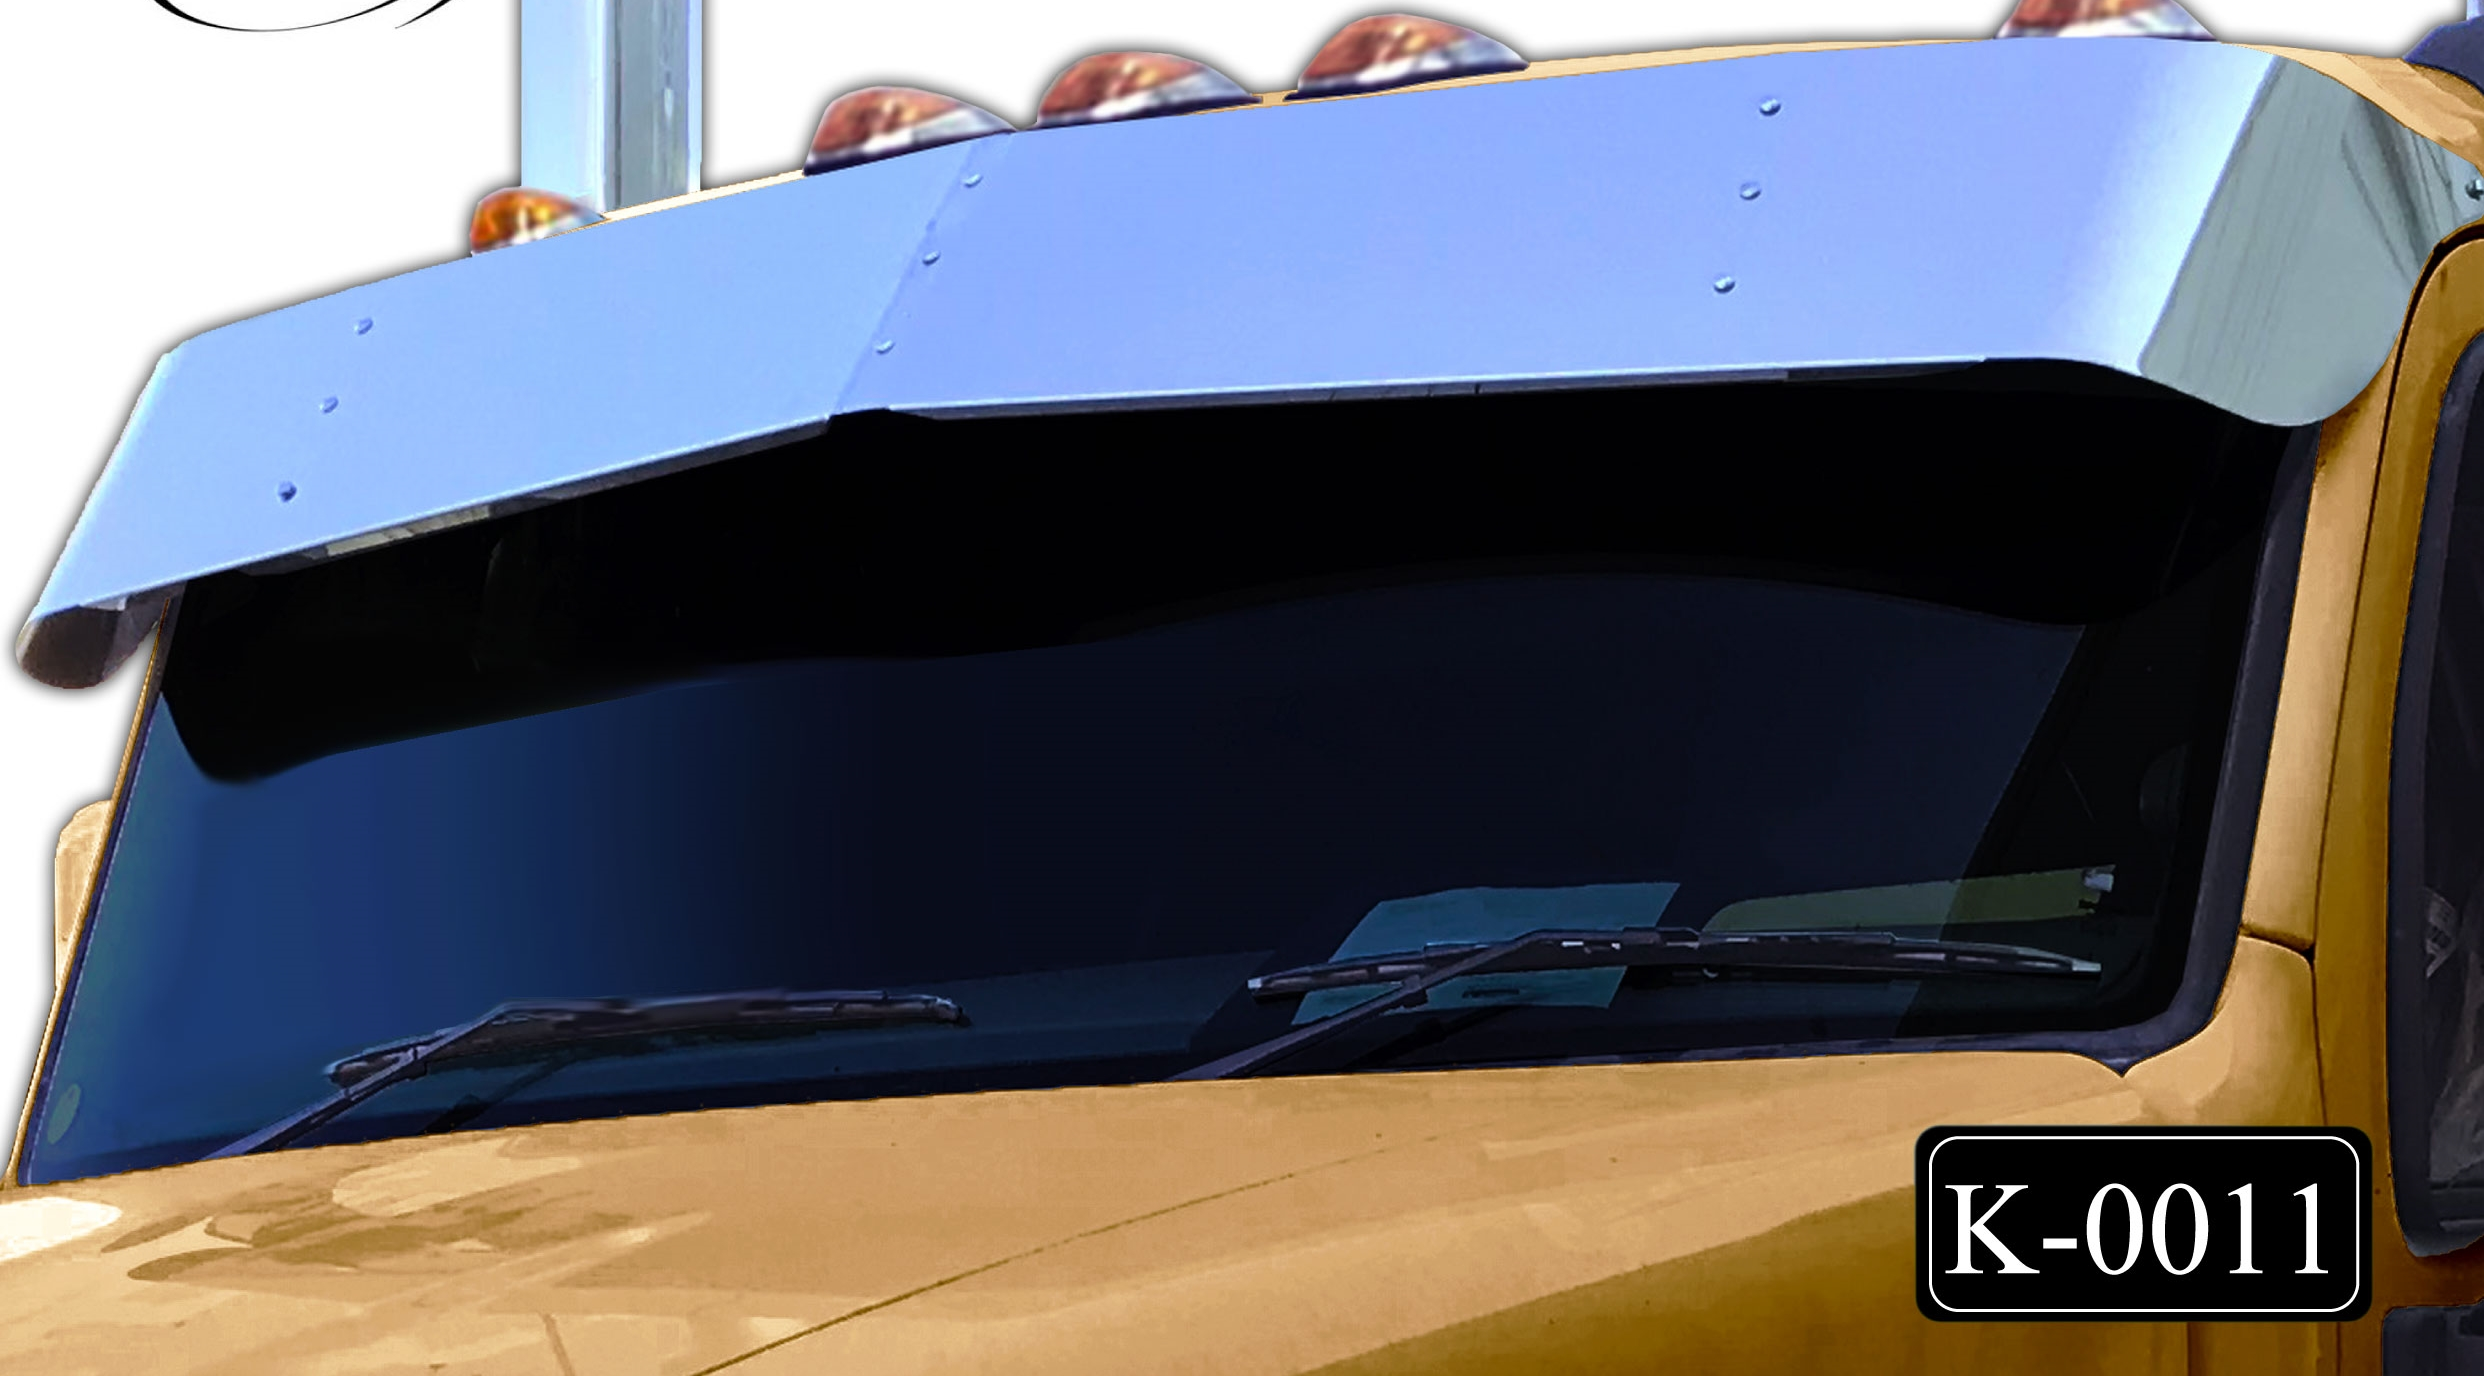 bowtie visor on a gold truck